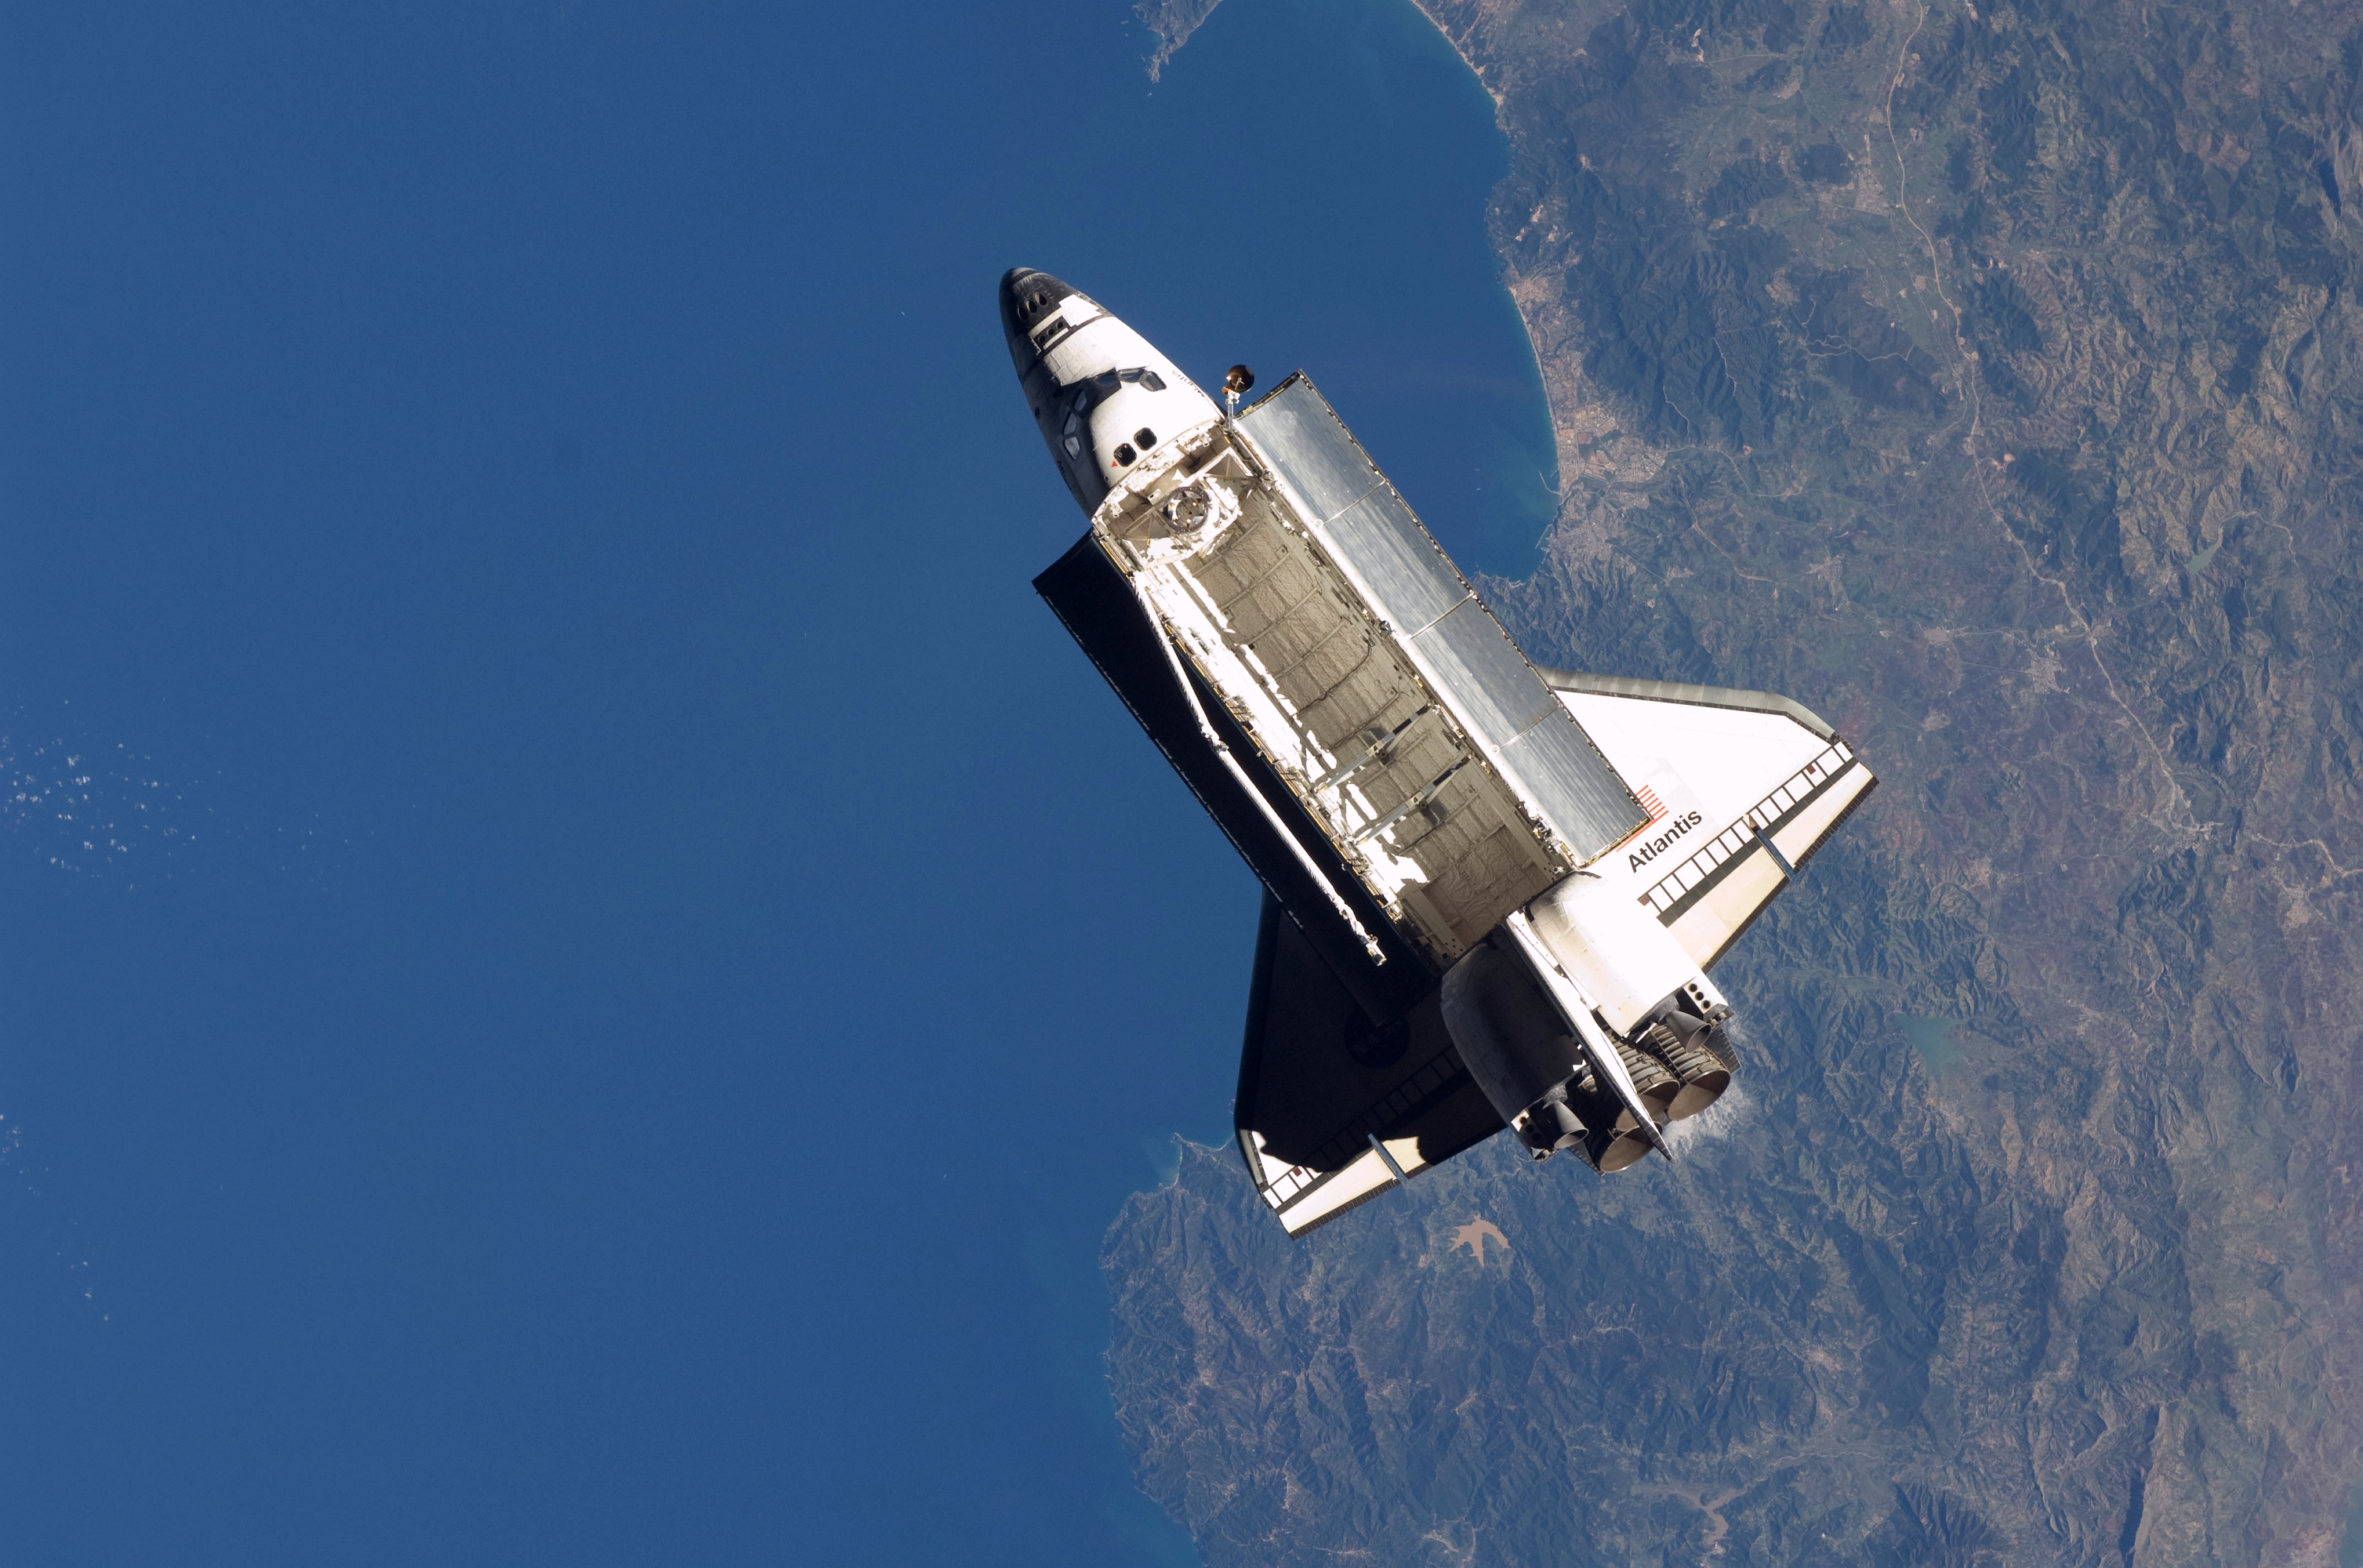 high res nasa space shuttle in orbit - photo #32